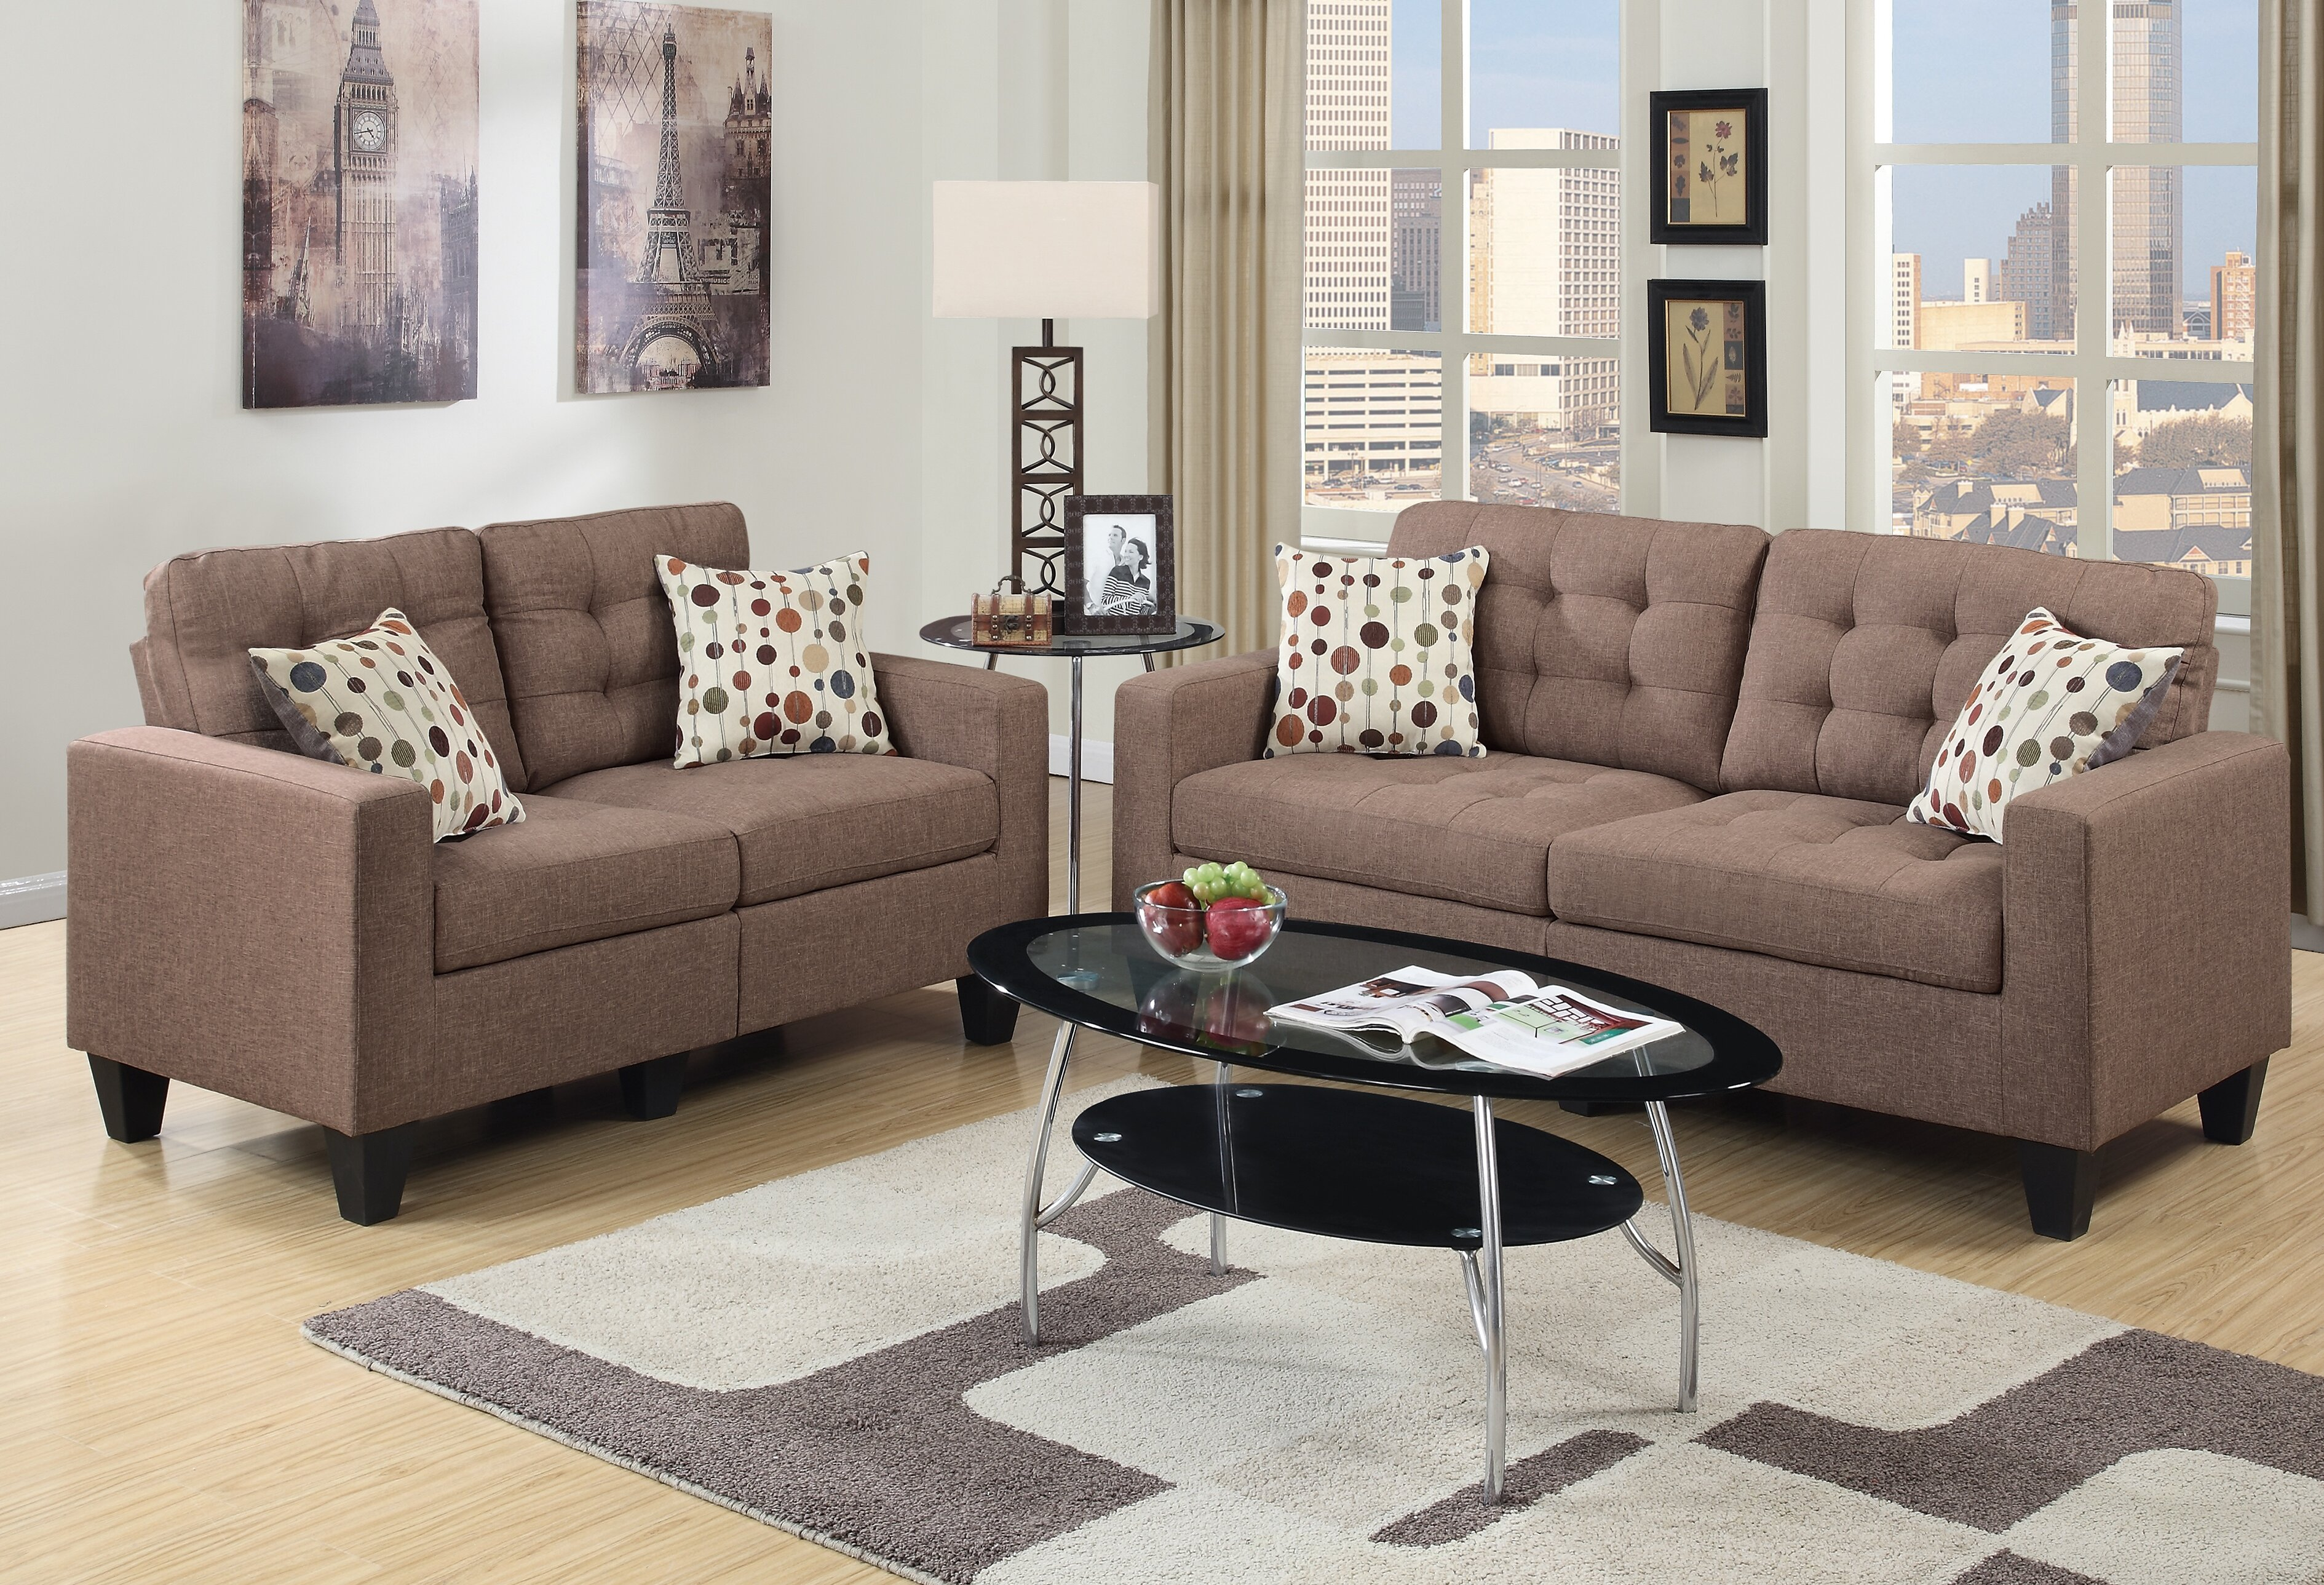 Andover mills callanan 2 piece living room set reviews wayfair